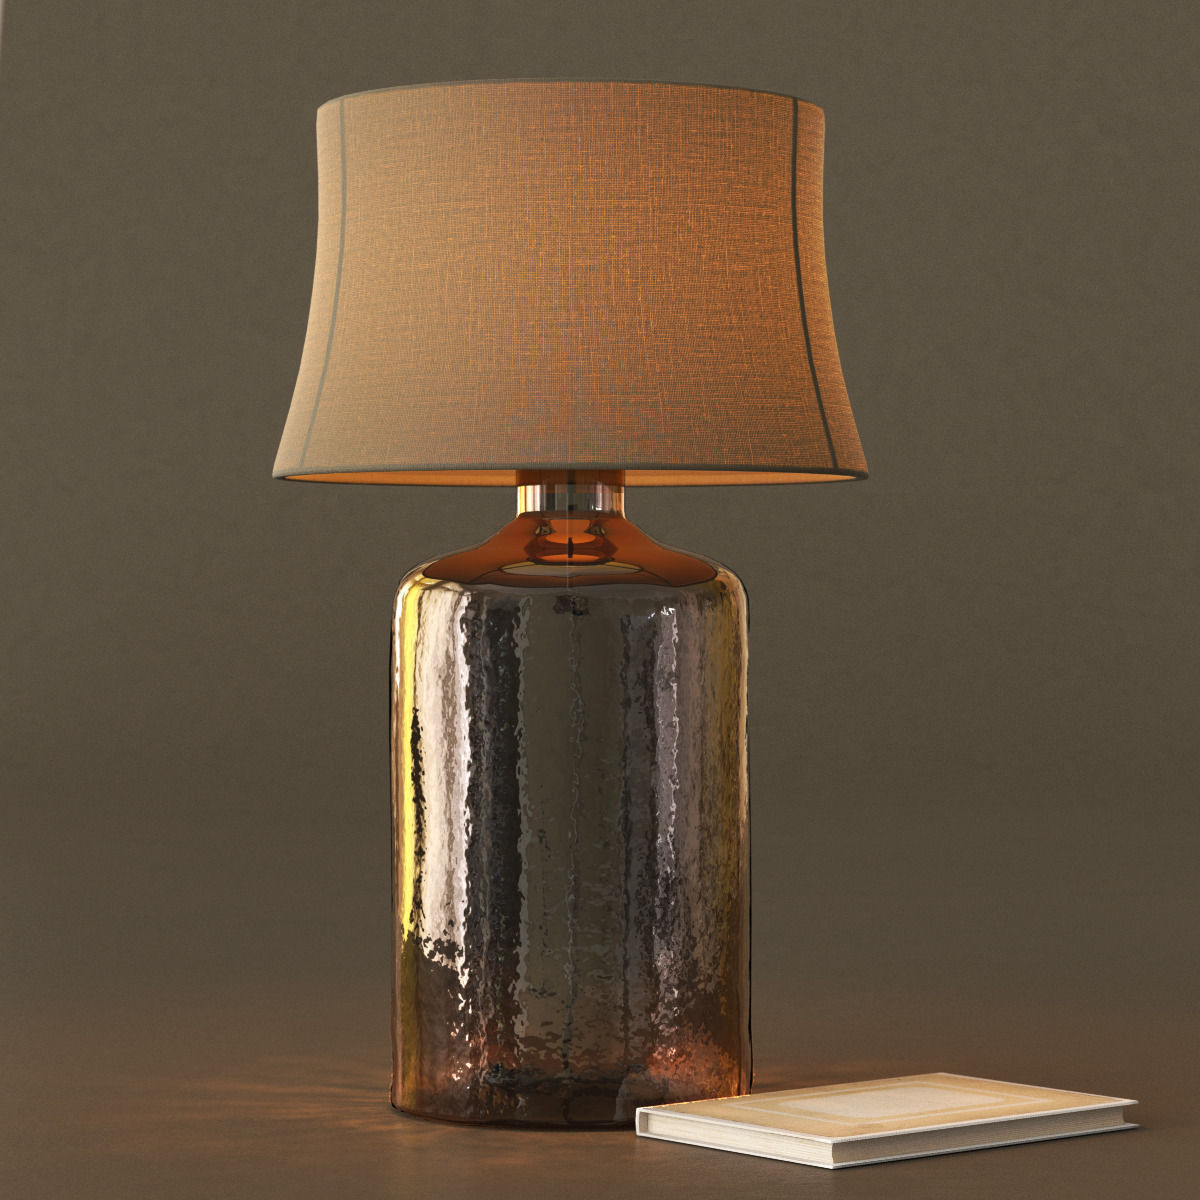 ... Pottery Barn Clift Glass Table Lamp Base   Espresso 3d Model Max Obj  3ds Fbx Mtl ...